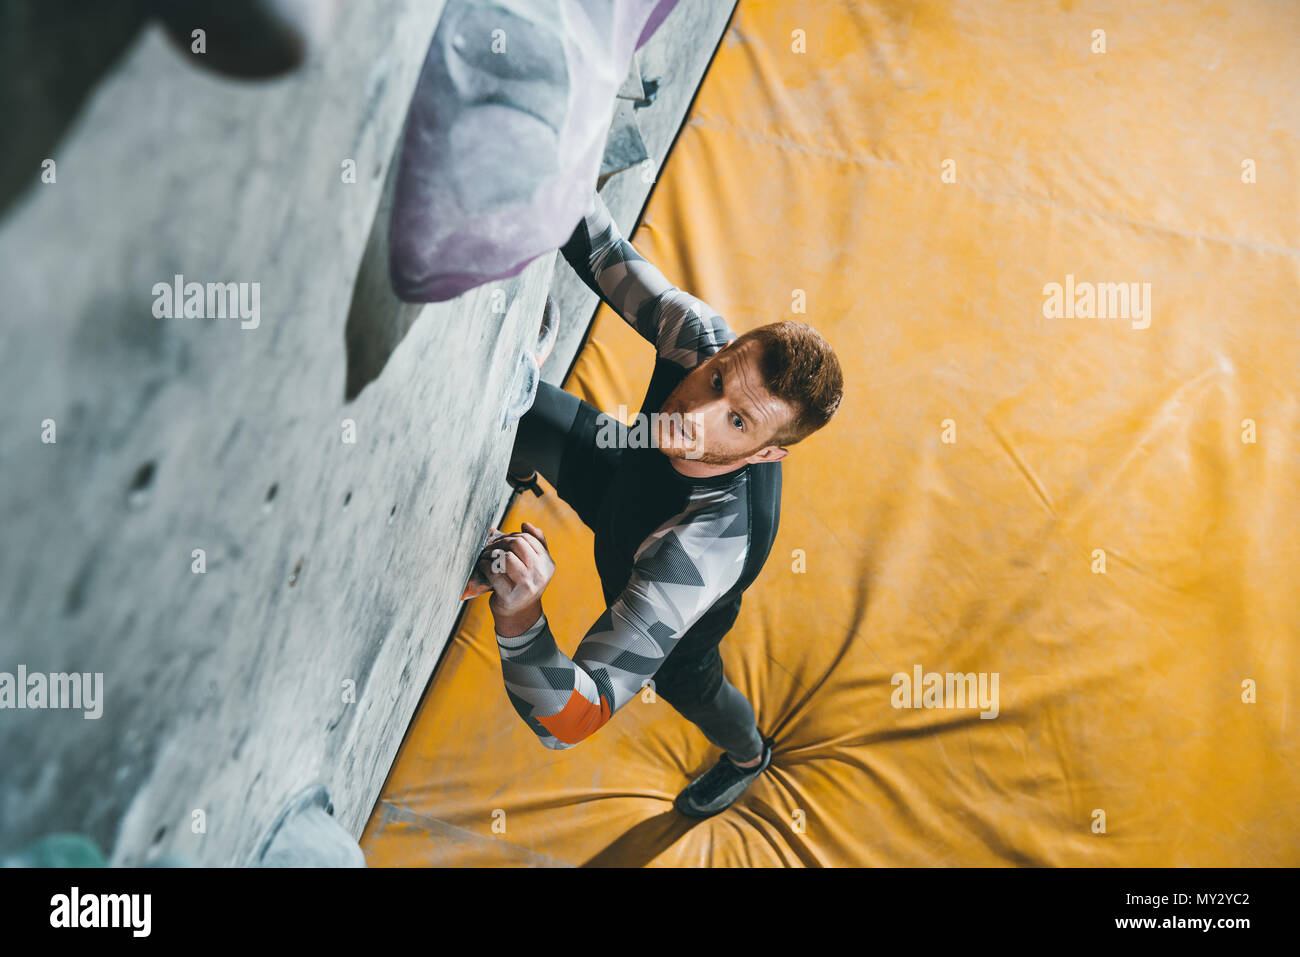 High-angle shot of young man in sportive attire climbing a wall with grips at gym - Stock Image